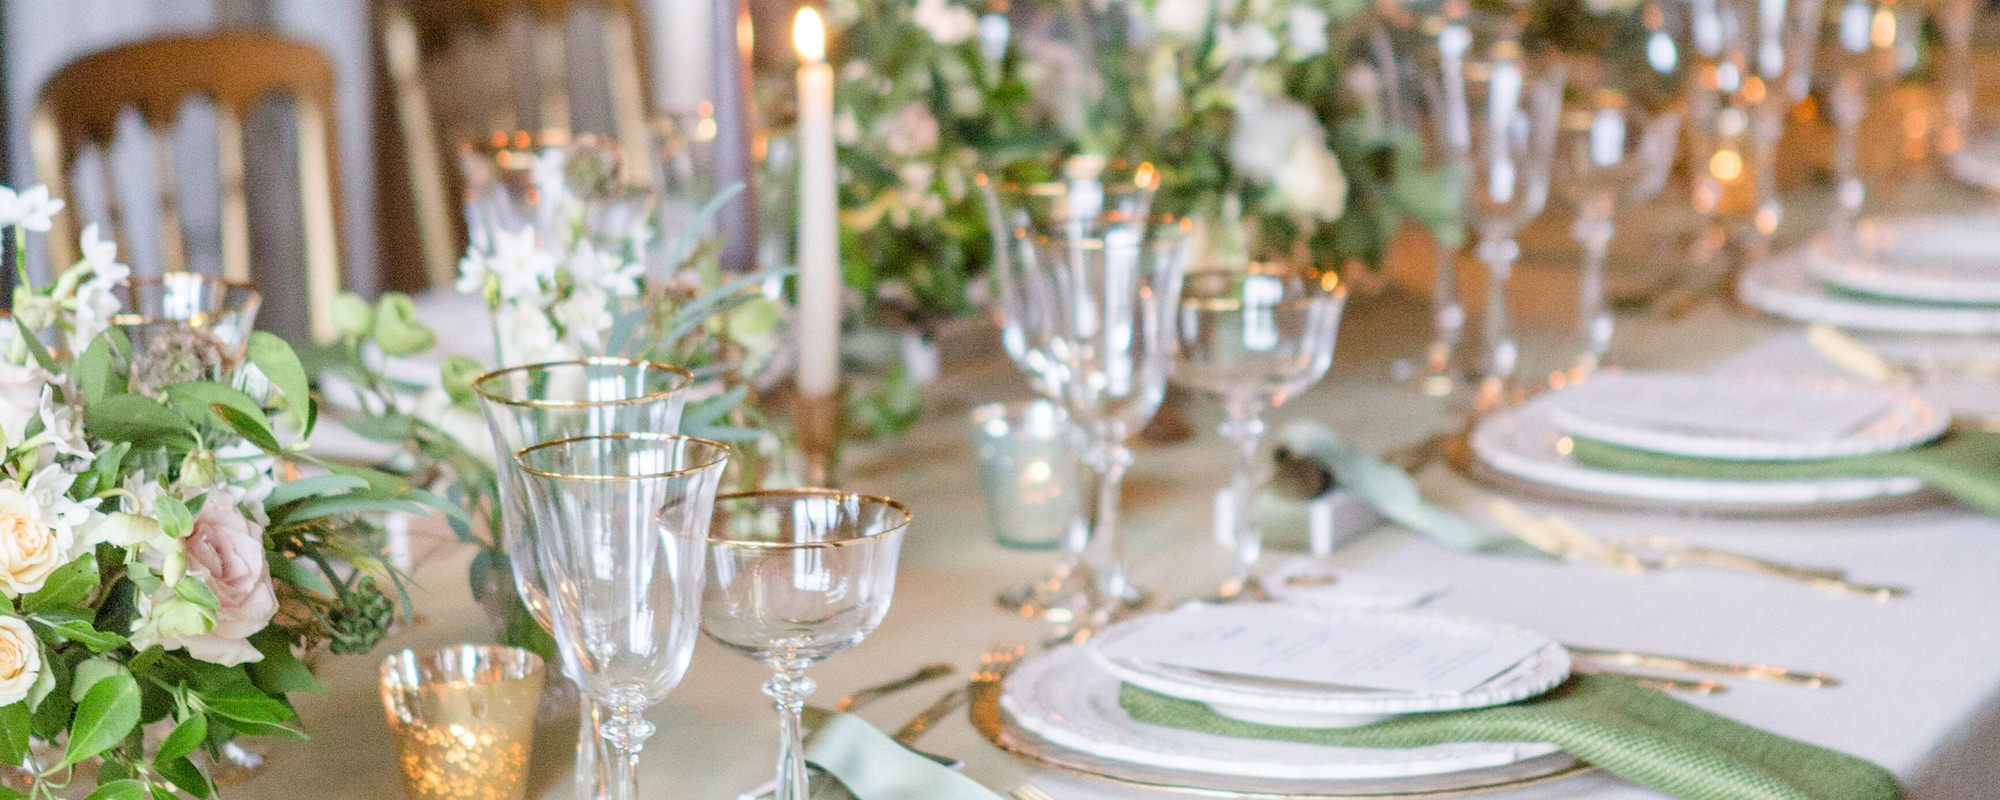 closeup of beautiful wedding breakfast setup